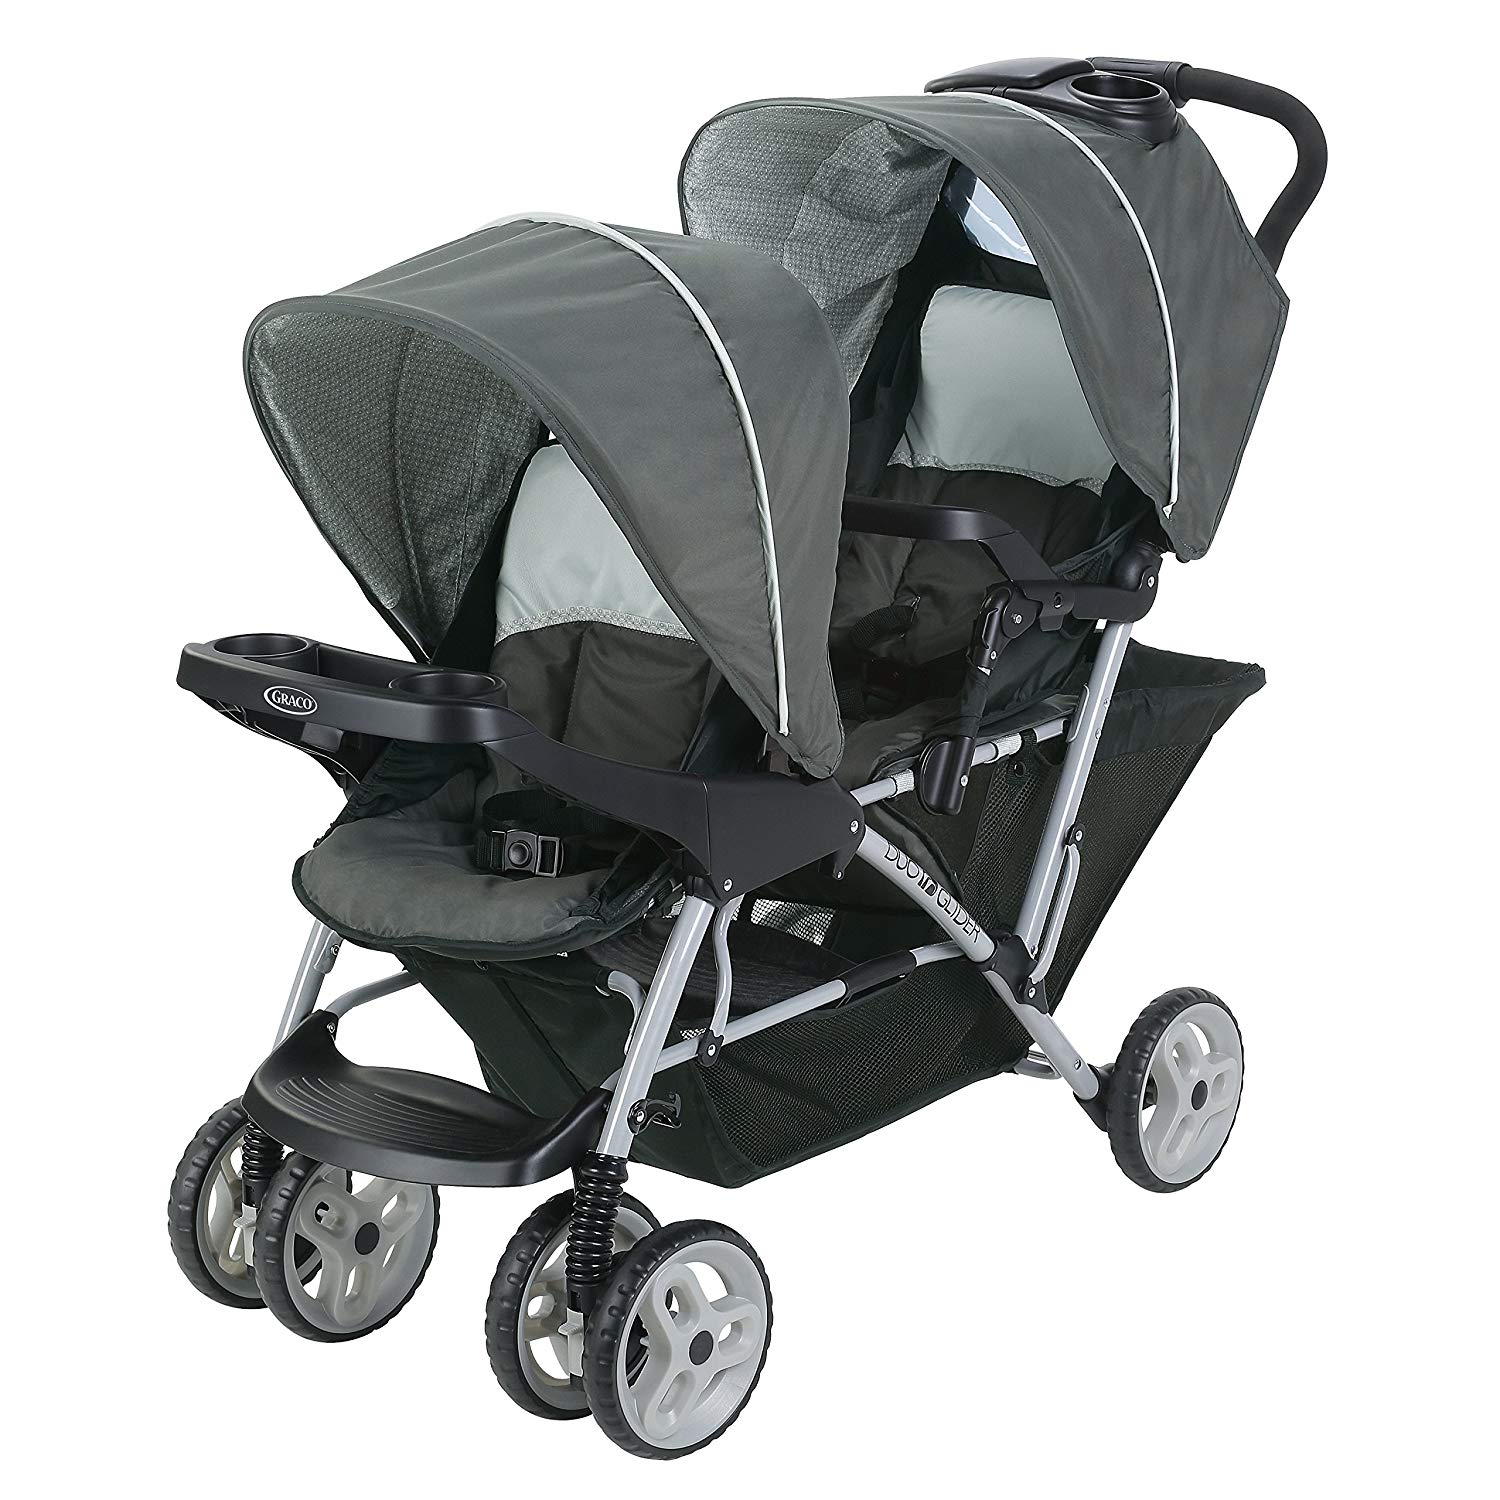 Graco DuoGlider Double Stroller | Lightweight Double Stroller with Tandem Seating